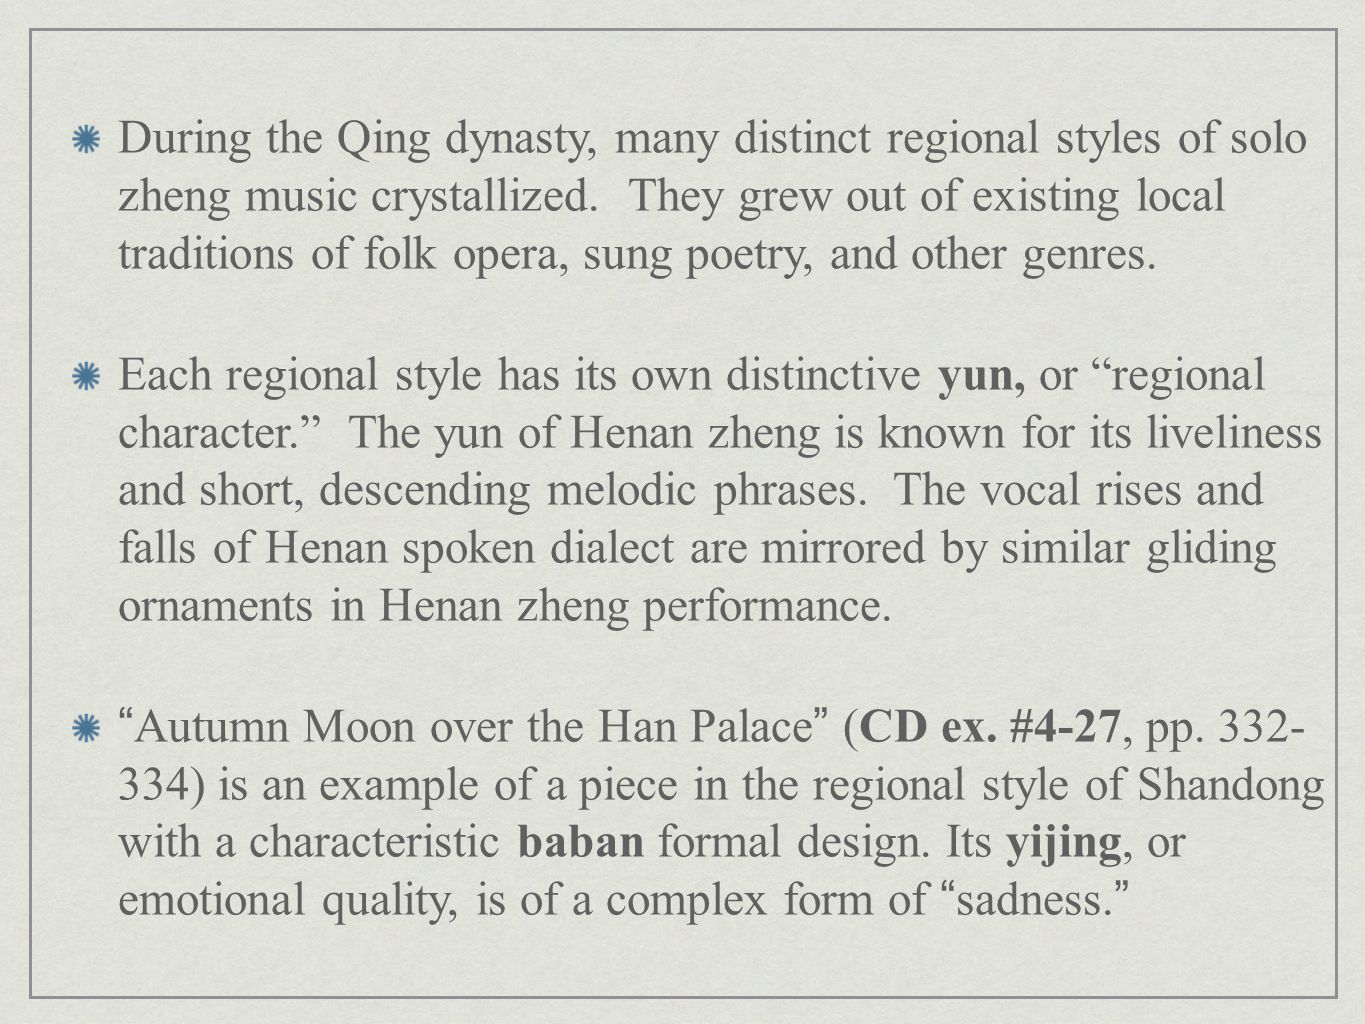 During the Qing dynasty, many distinct regional styles of solo zheng music crystallized. They grew out of existing local traditions of folk opera, sung poetry, and other genres.